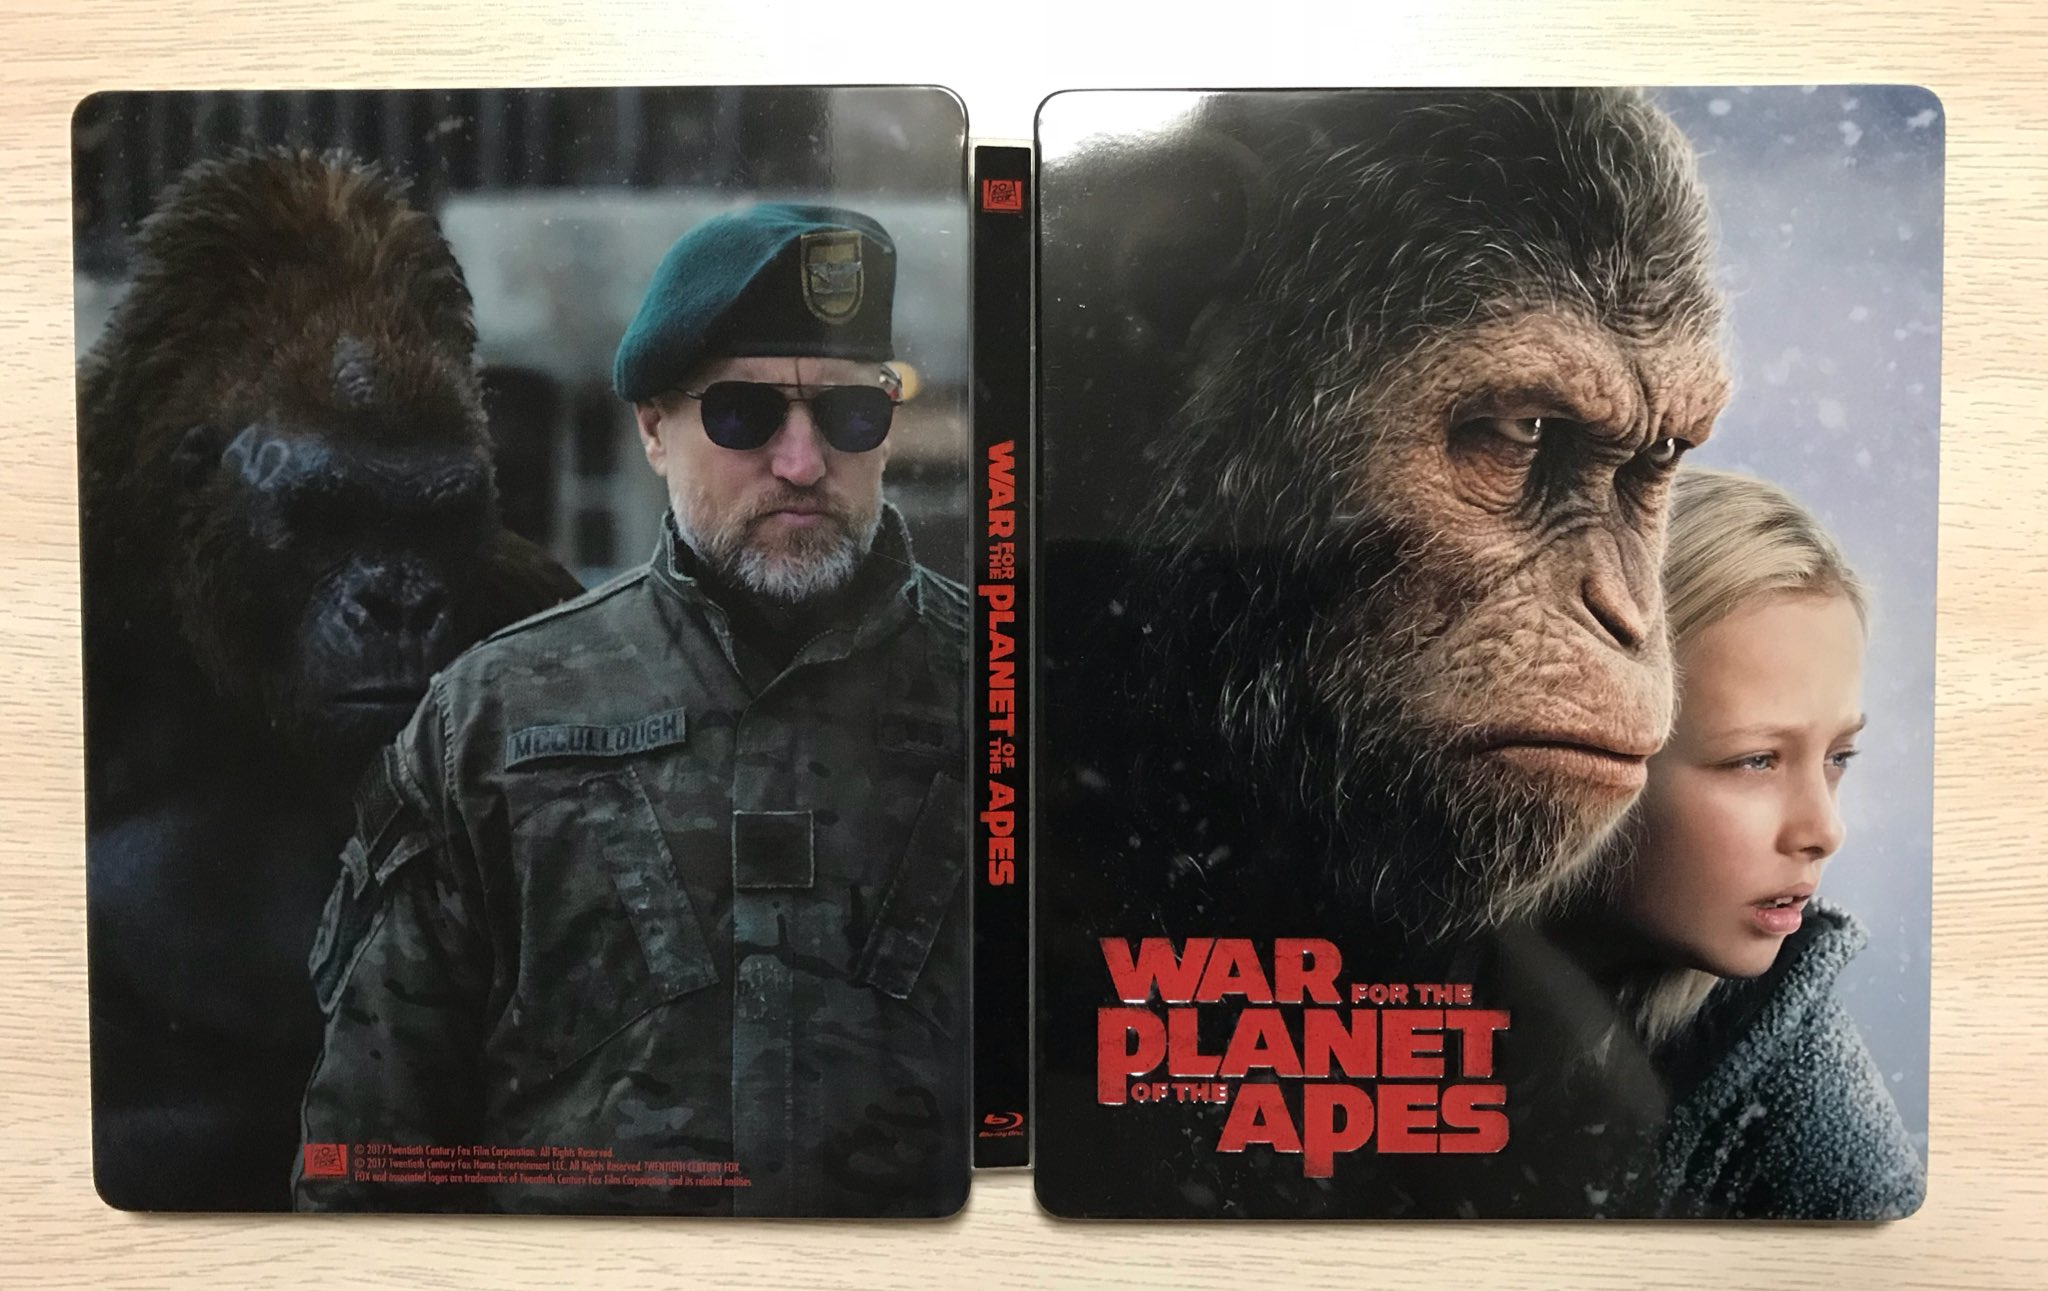 war-for-the-planet-of-the-apes-steelbook-manta-lab-1-jpg.985640